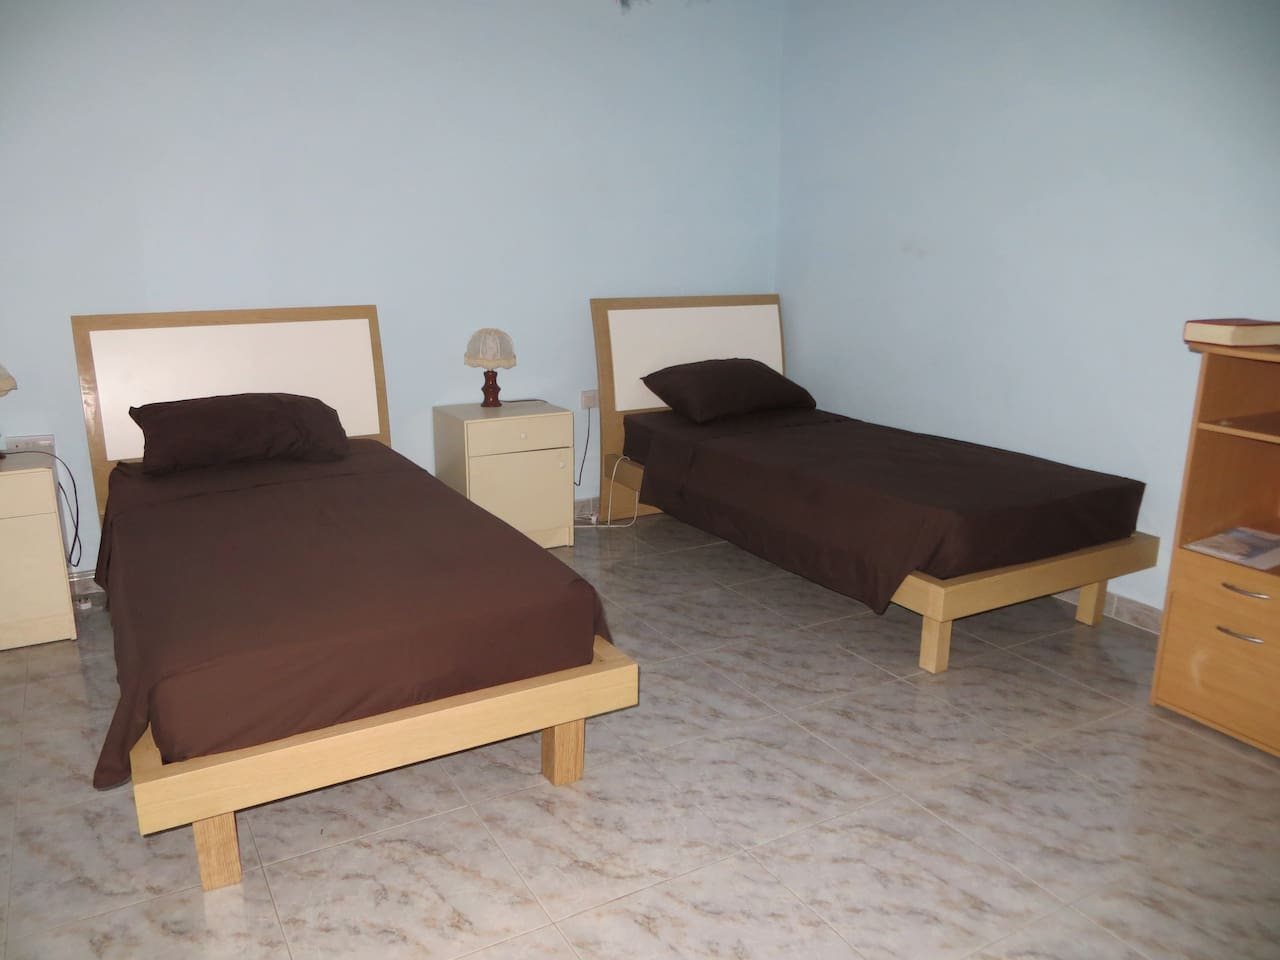 the beds - spacious and comfortable